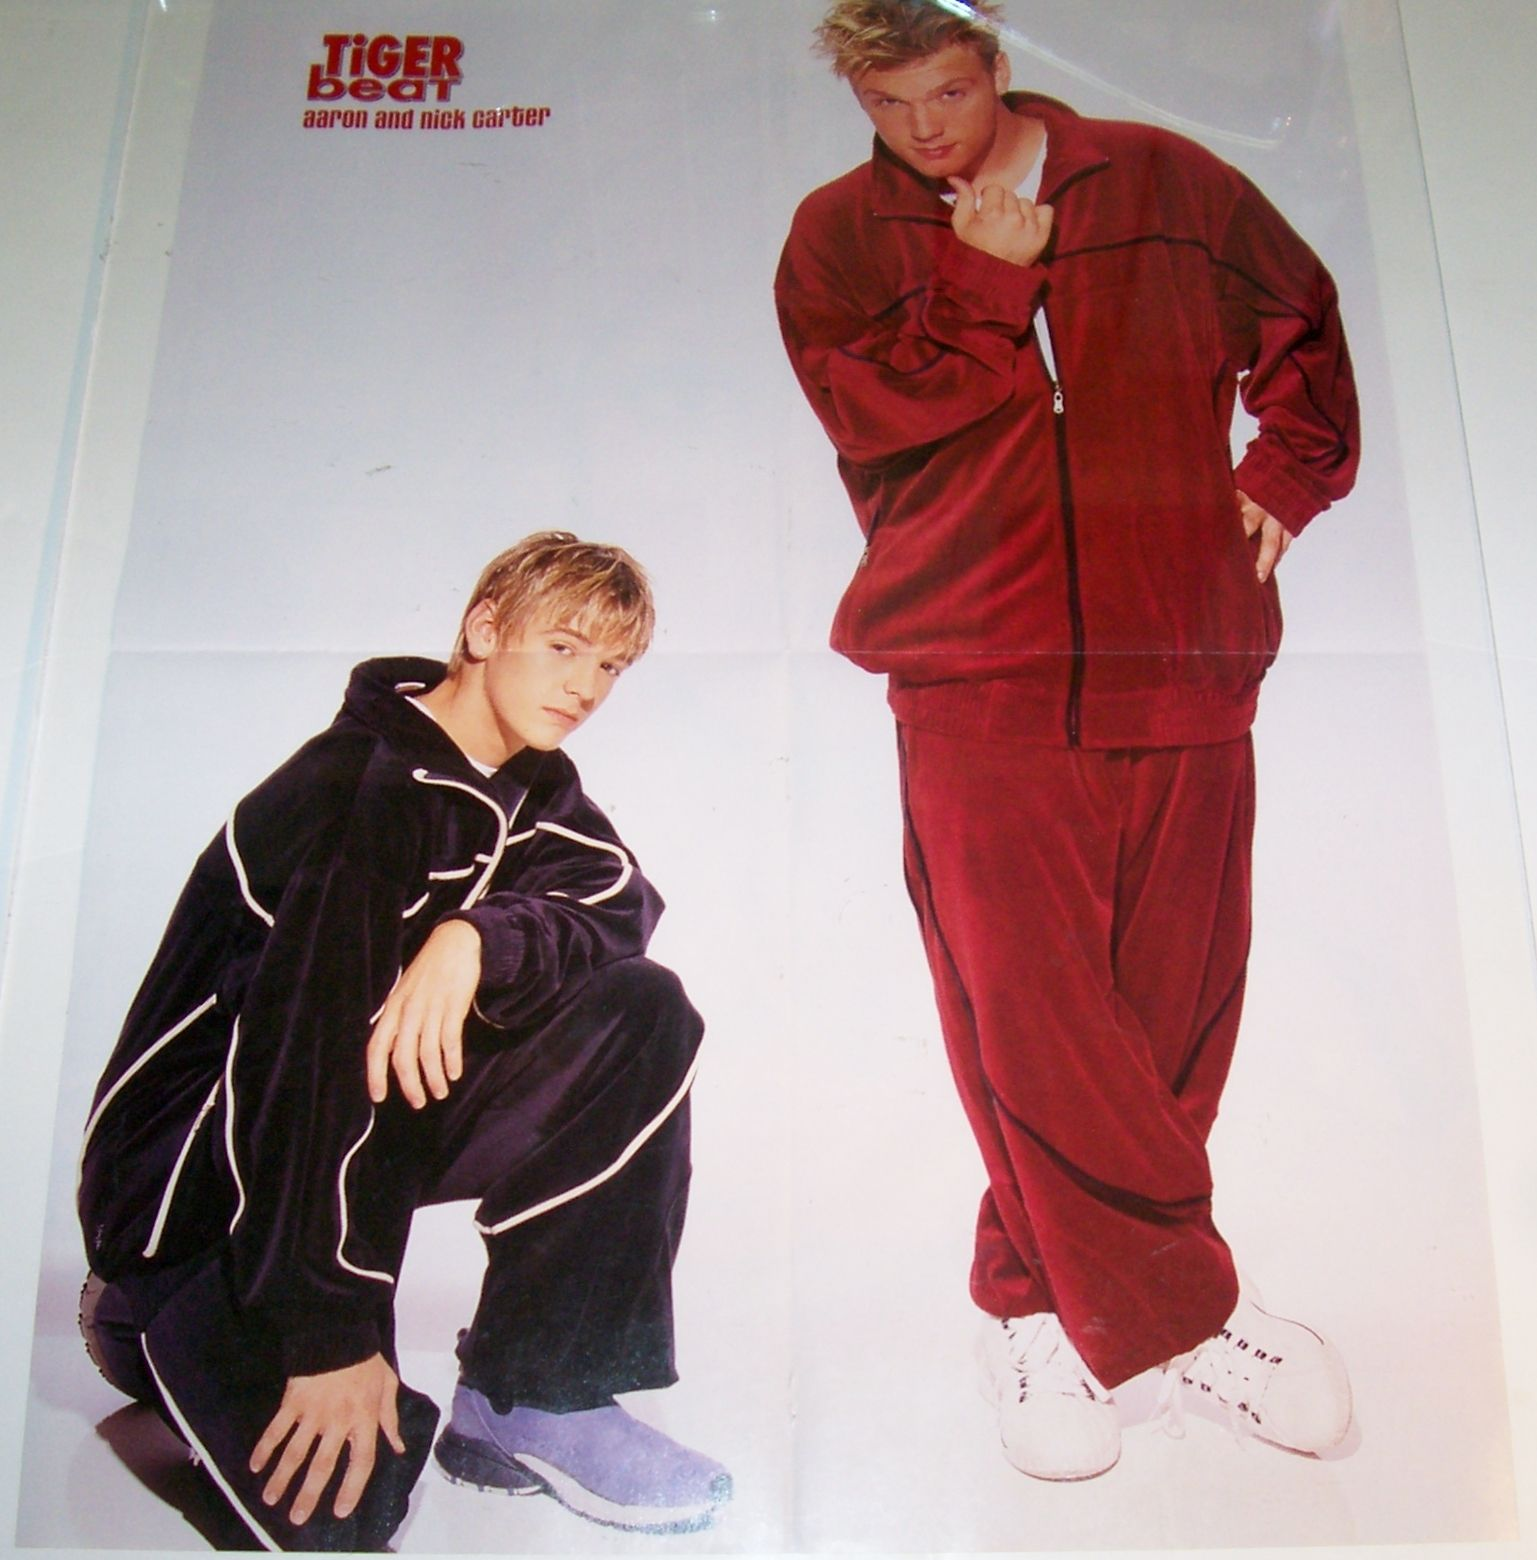 Tiger Beat - Nick and Aaron (http://www.ebay.com/itm/AARON-NICK-CARTER-BRITNEY-SPEARS-BLOND-TEEN-BOY-21-x16-MAGAZINE-POSTER-/251101886000?pt=Art_Photo_Images=item3a76d6b630)